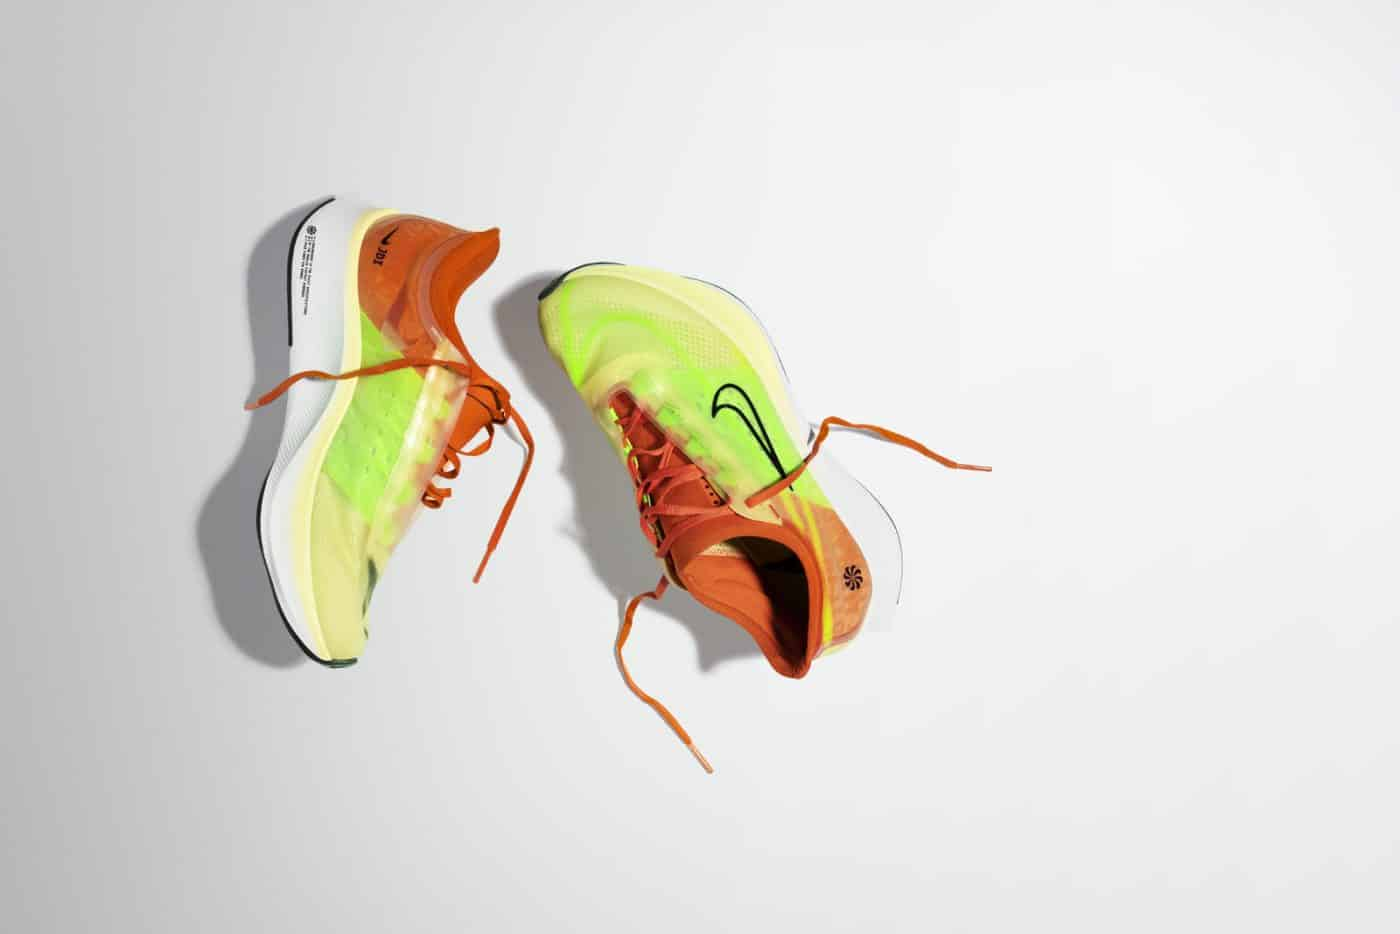 nike-fast-pack-pegasus-36-pegasus-turbo-zoom-fly-3-zoom-next%-16